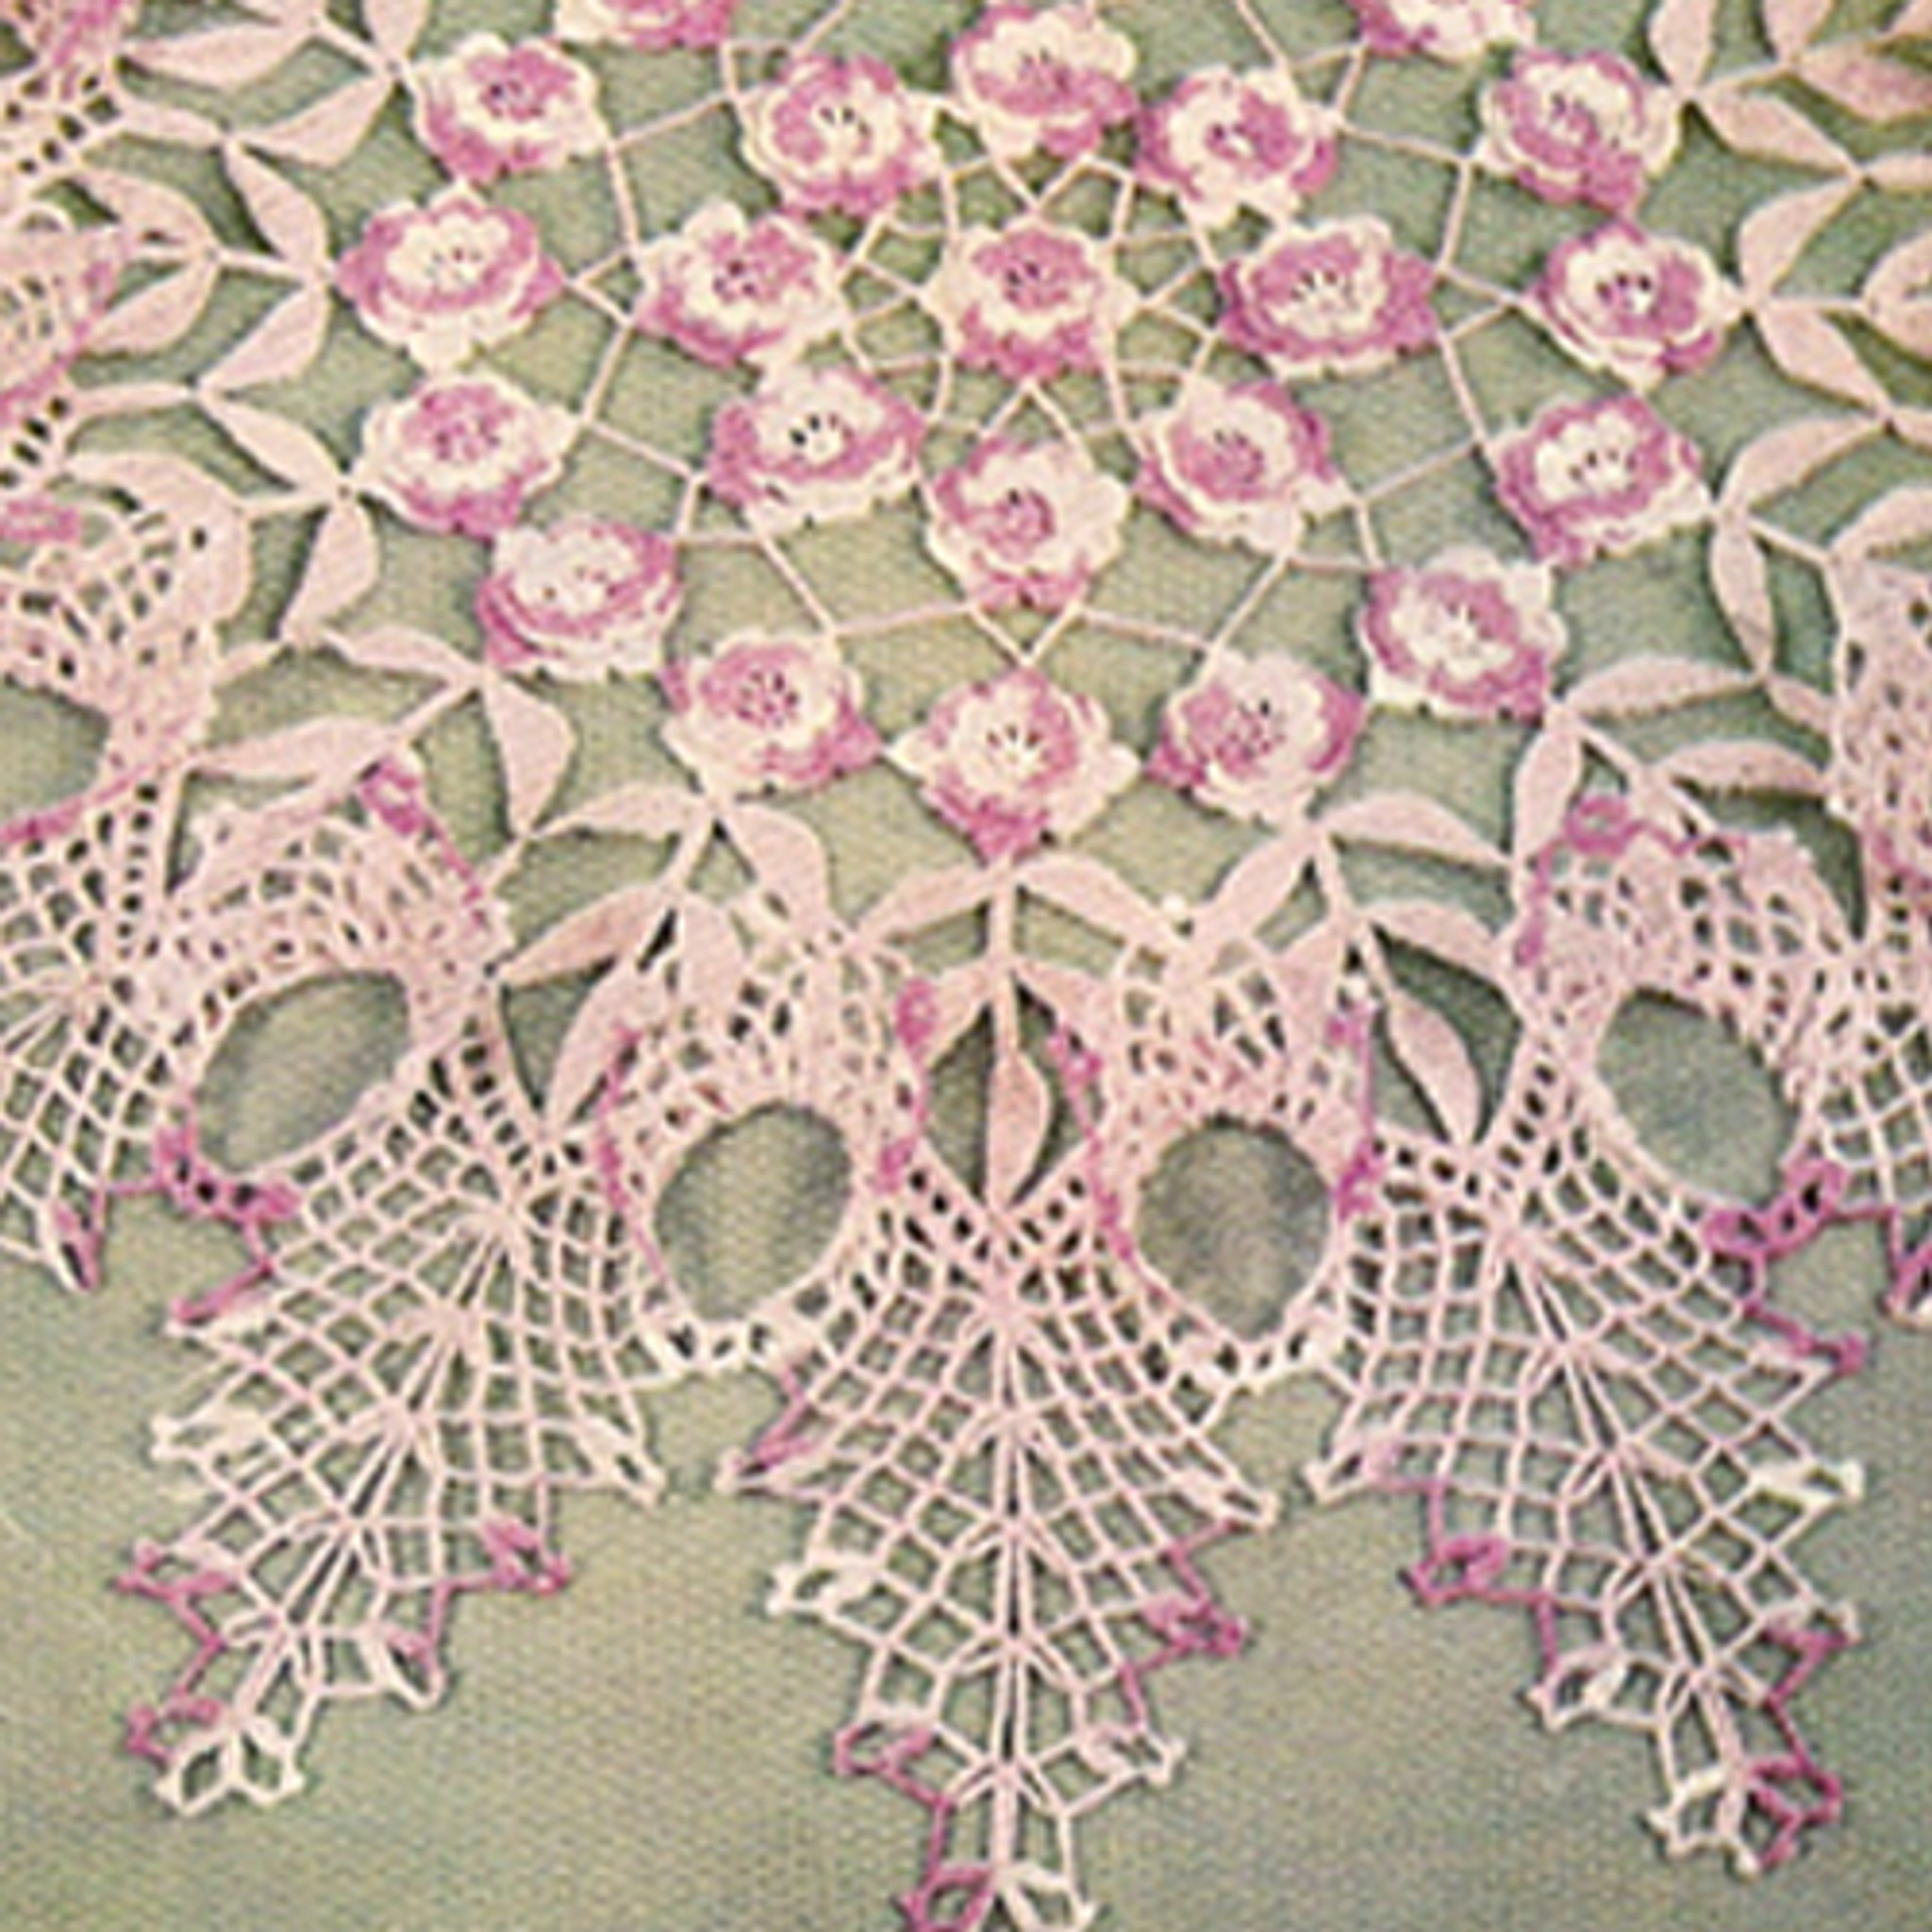 Vintage Rose Ruffled Centerpiece Crochet Doily Pattern